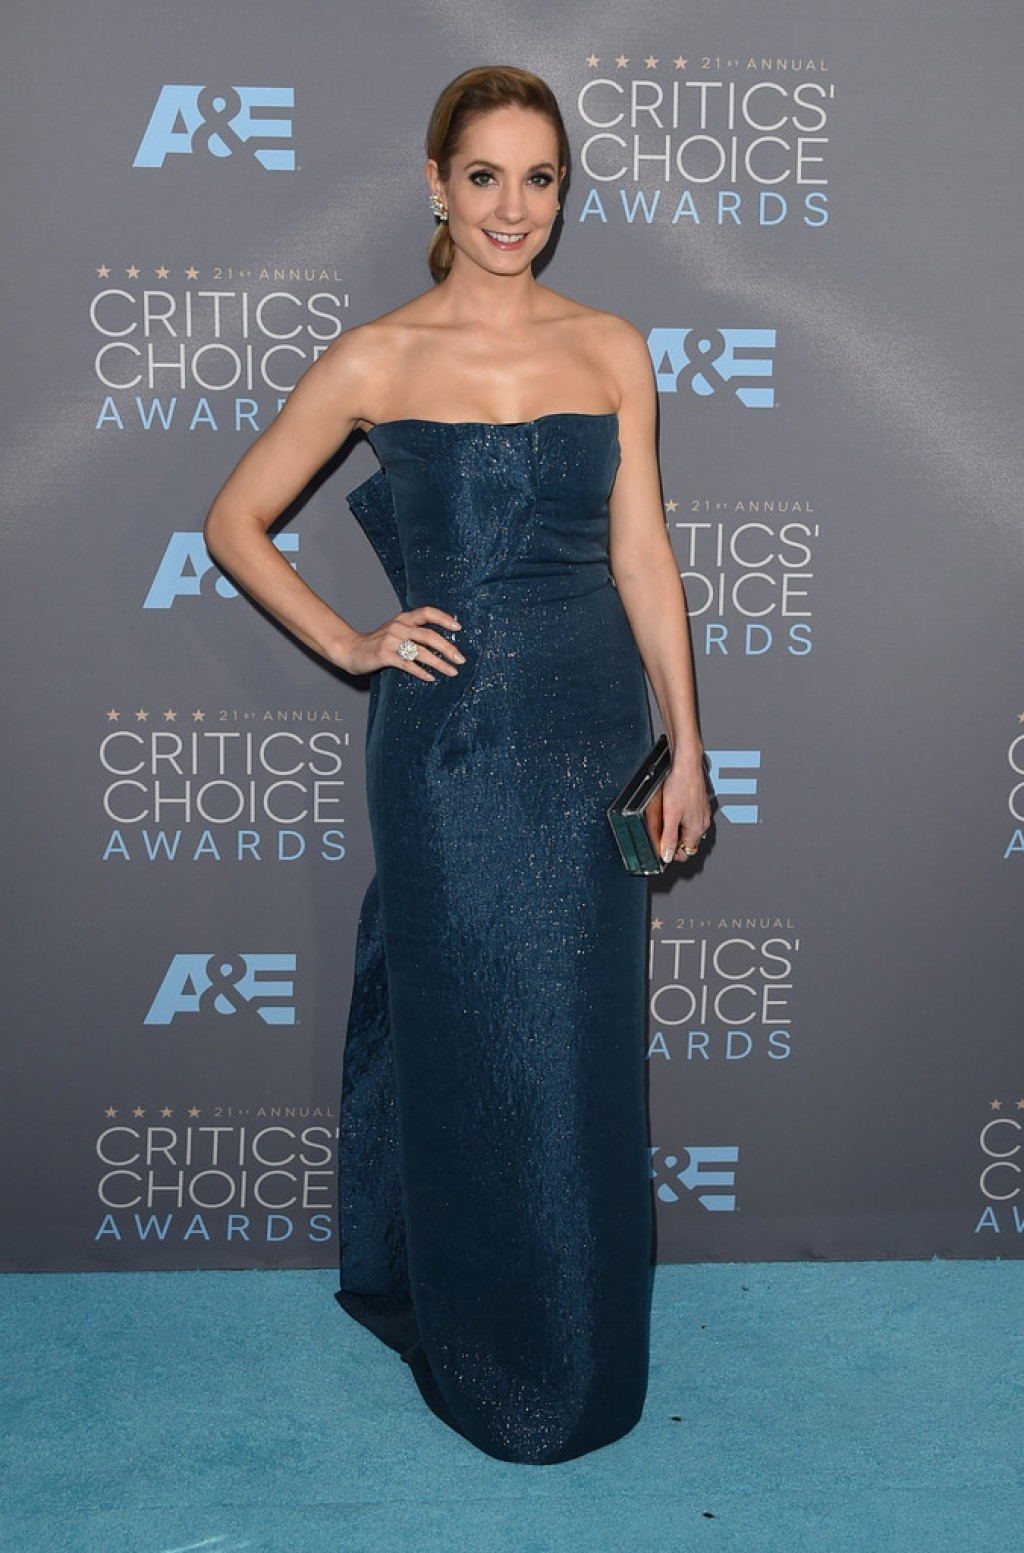 joanne-froggatt-critics-choice-awards-roland-mouret-dress-1024x1553